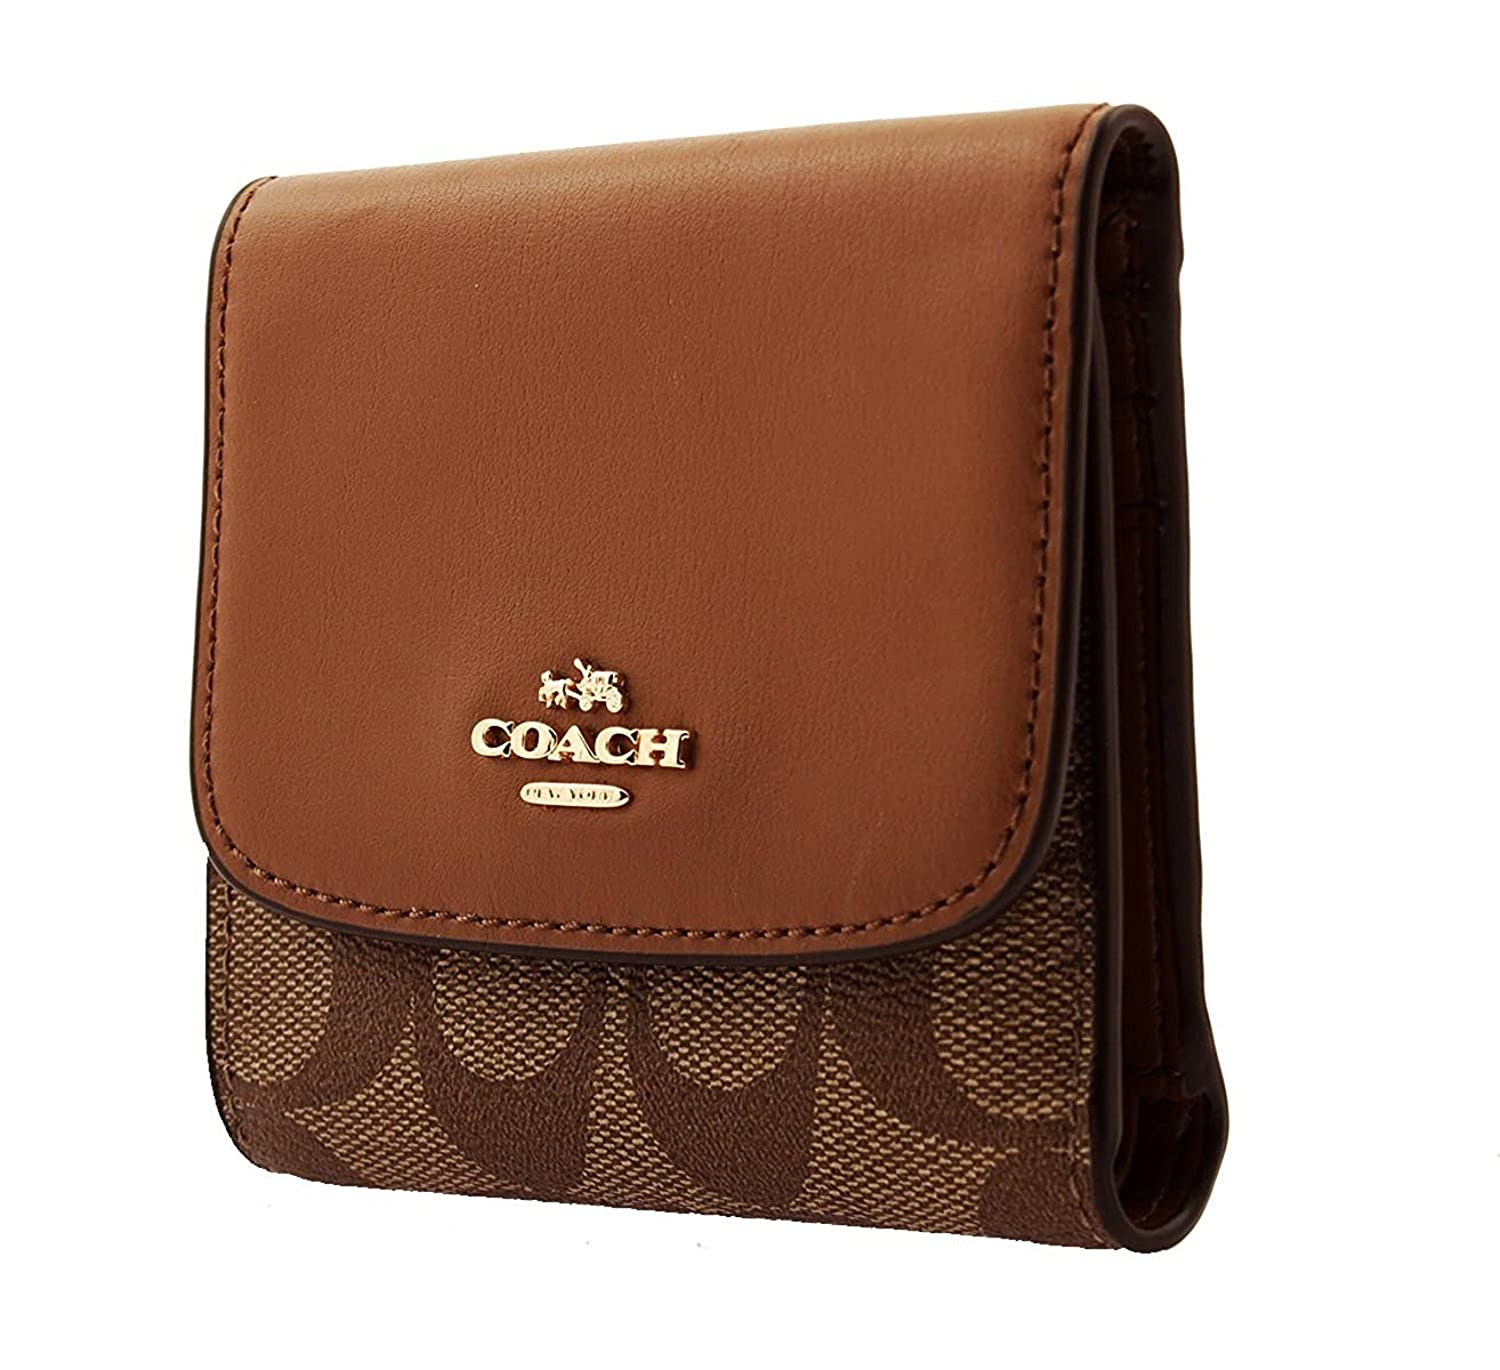 COACH Small Wallet in Signature Coated Canvas, F87589 at Amazon Women's  Clothing store: